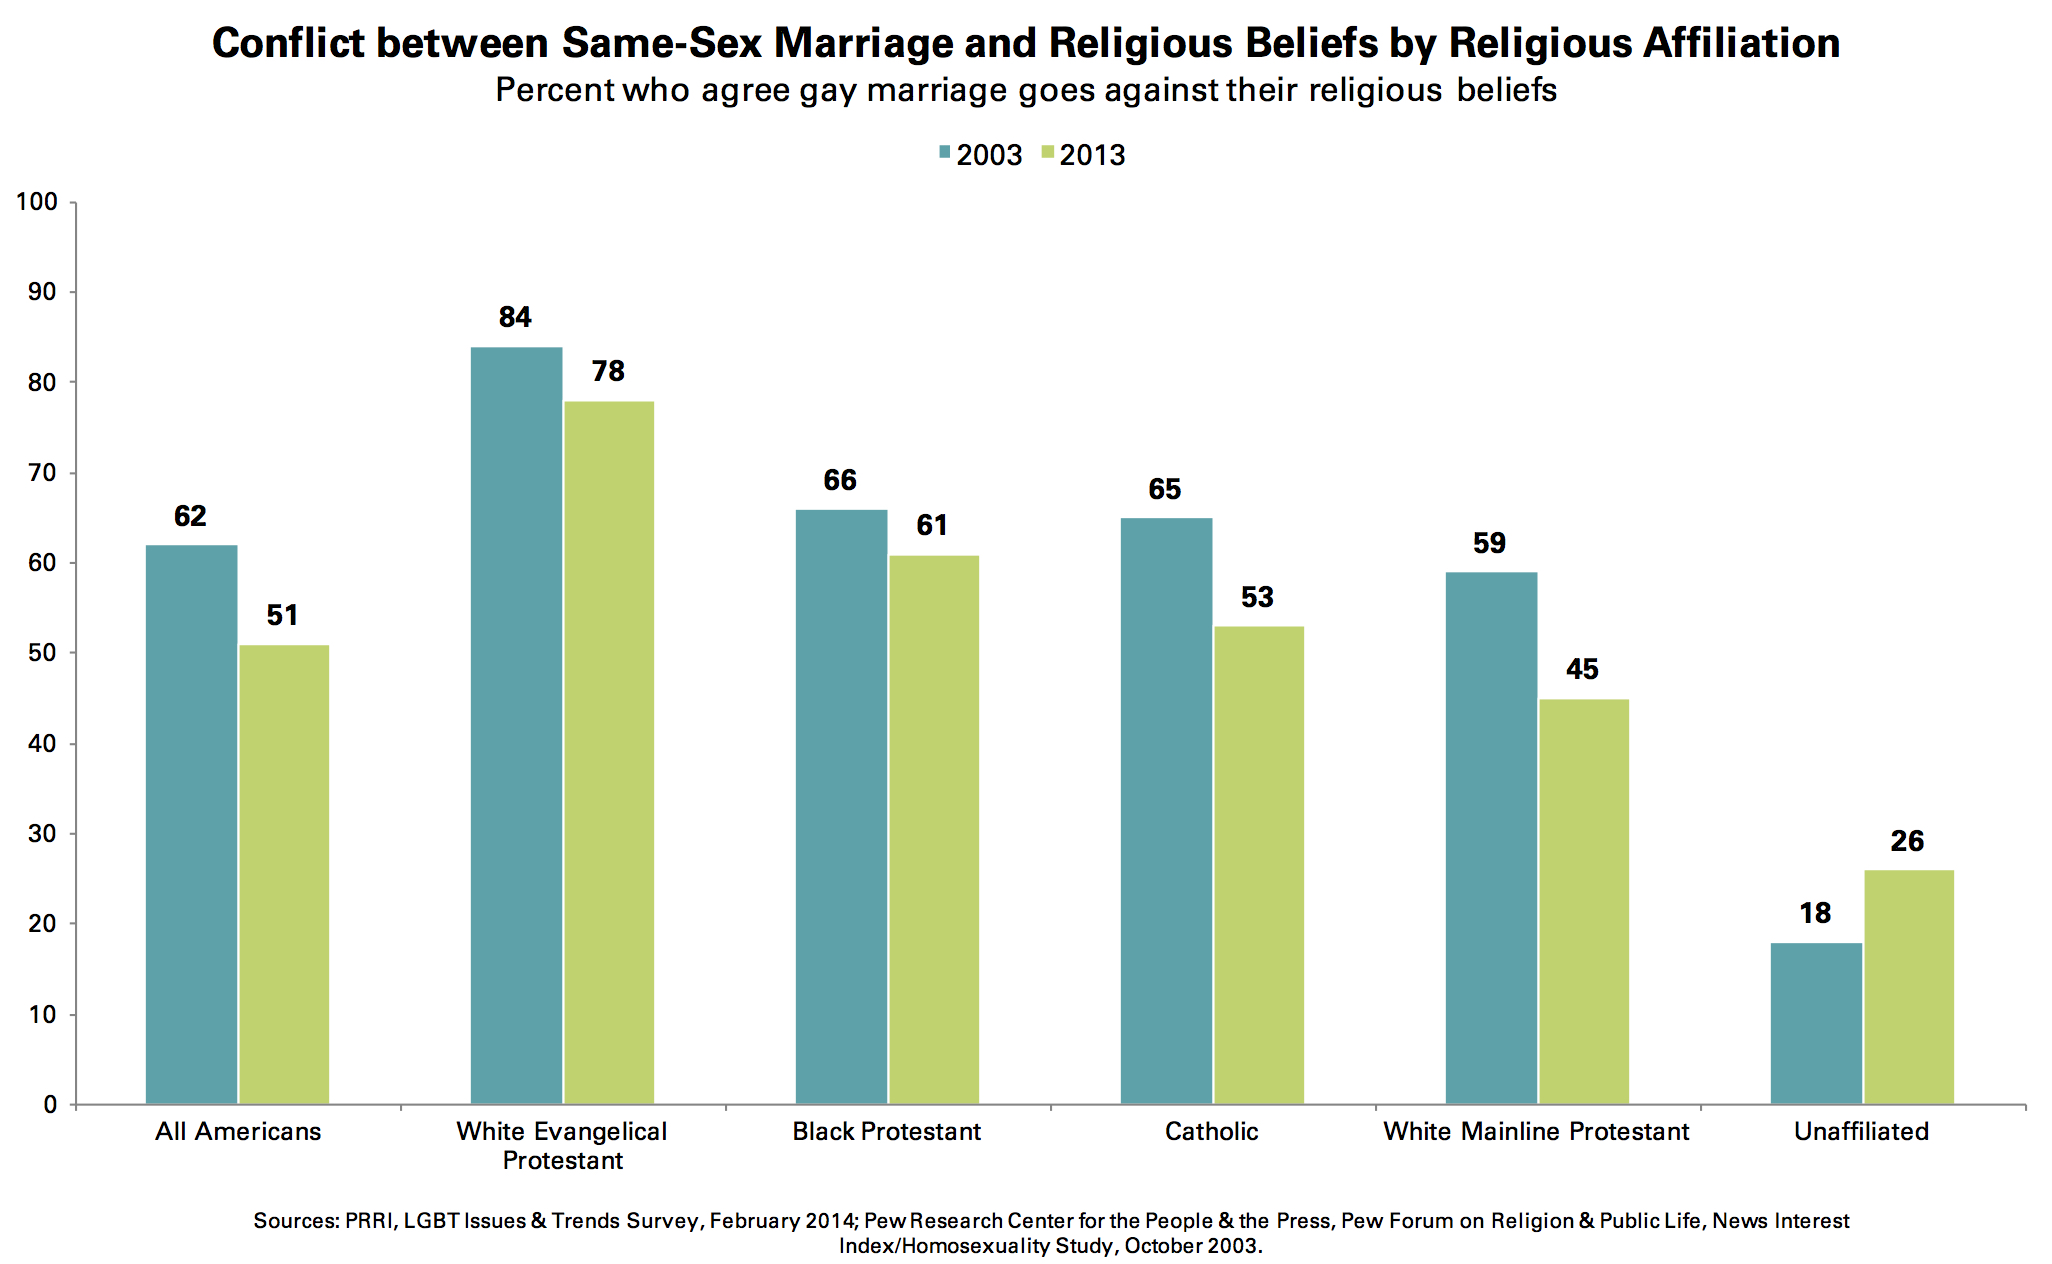 Religious views on same-sex marriage